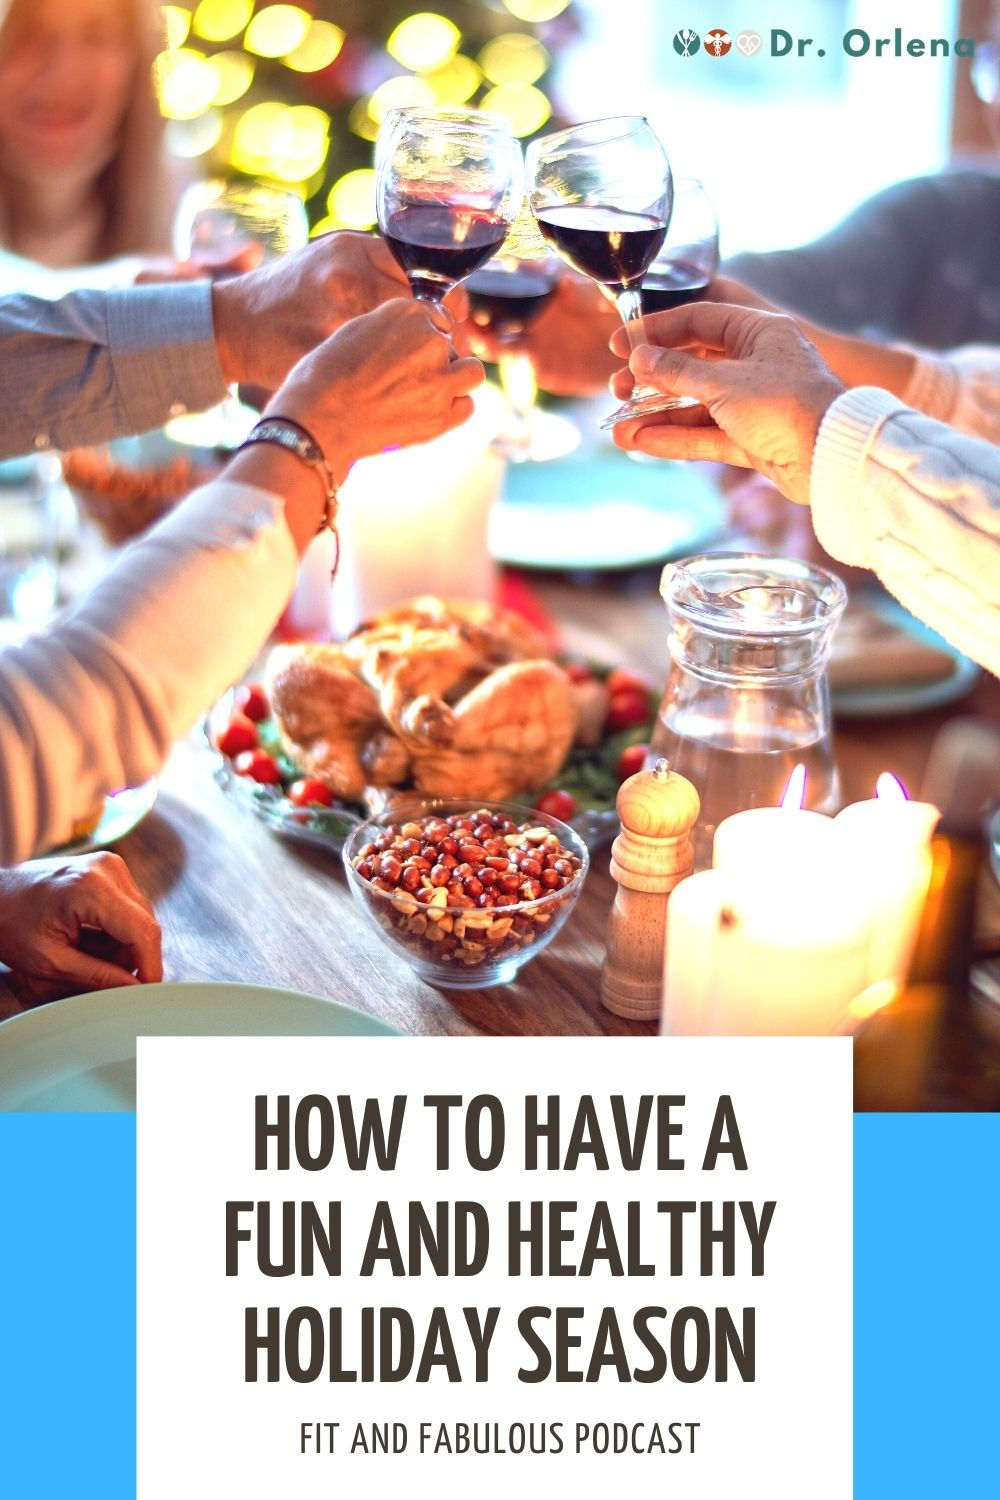 A group of people doing a toast with wine glasses while having a holiday feast #holiday #healthyholiday #holidayeating #healthyeating #healthylifestyle